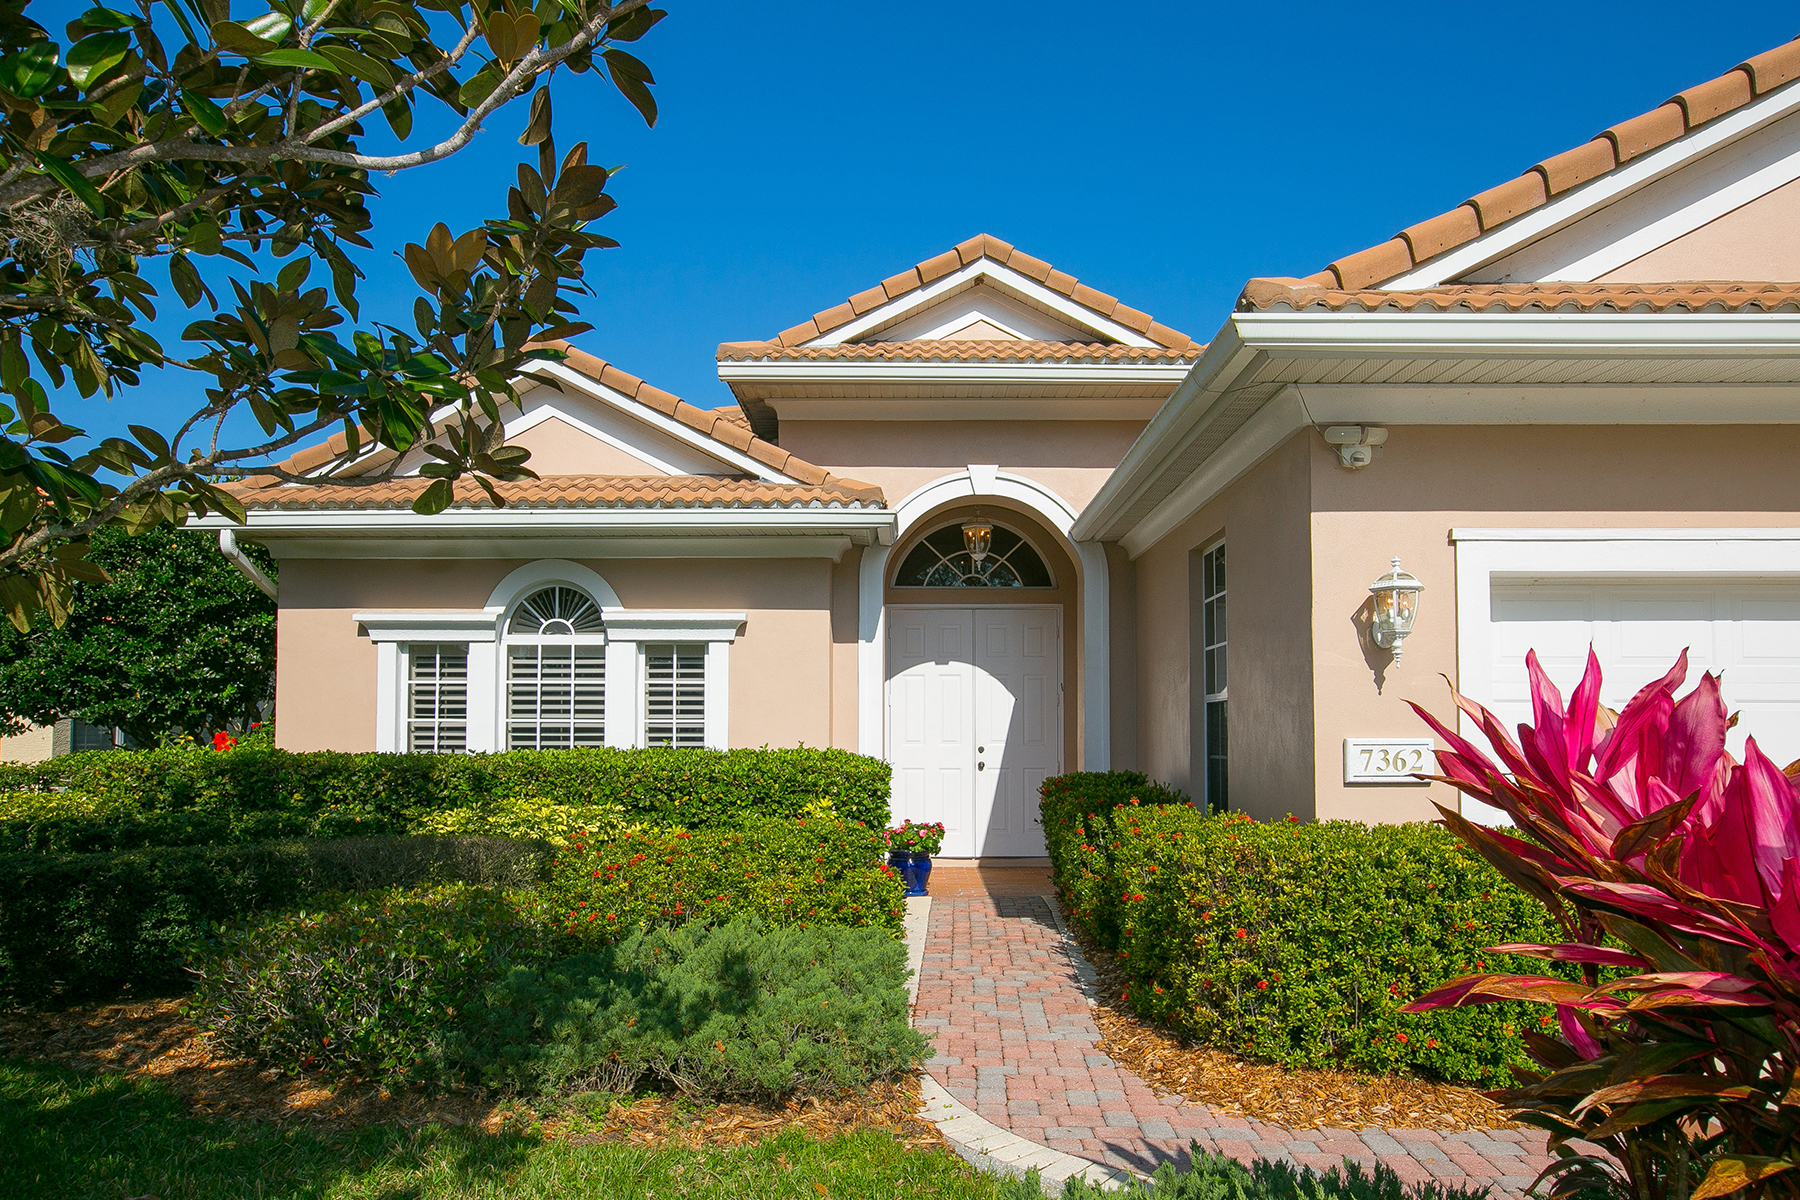 Single Family Home for Sale at 7362 Windemere Ln , University Park, FL 34201 7362 Windemere Ln University Park, Florida, 34201 United States